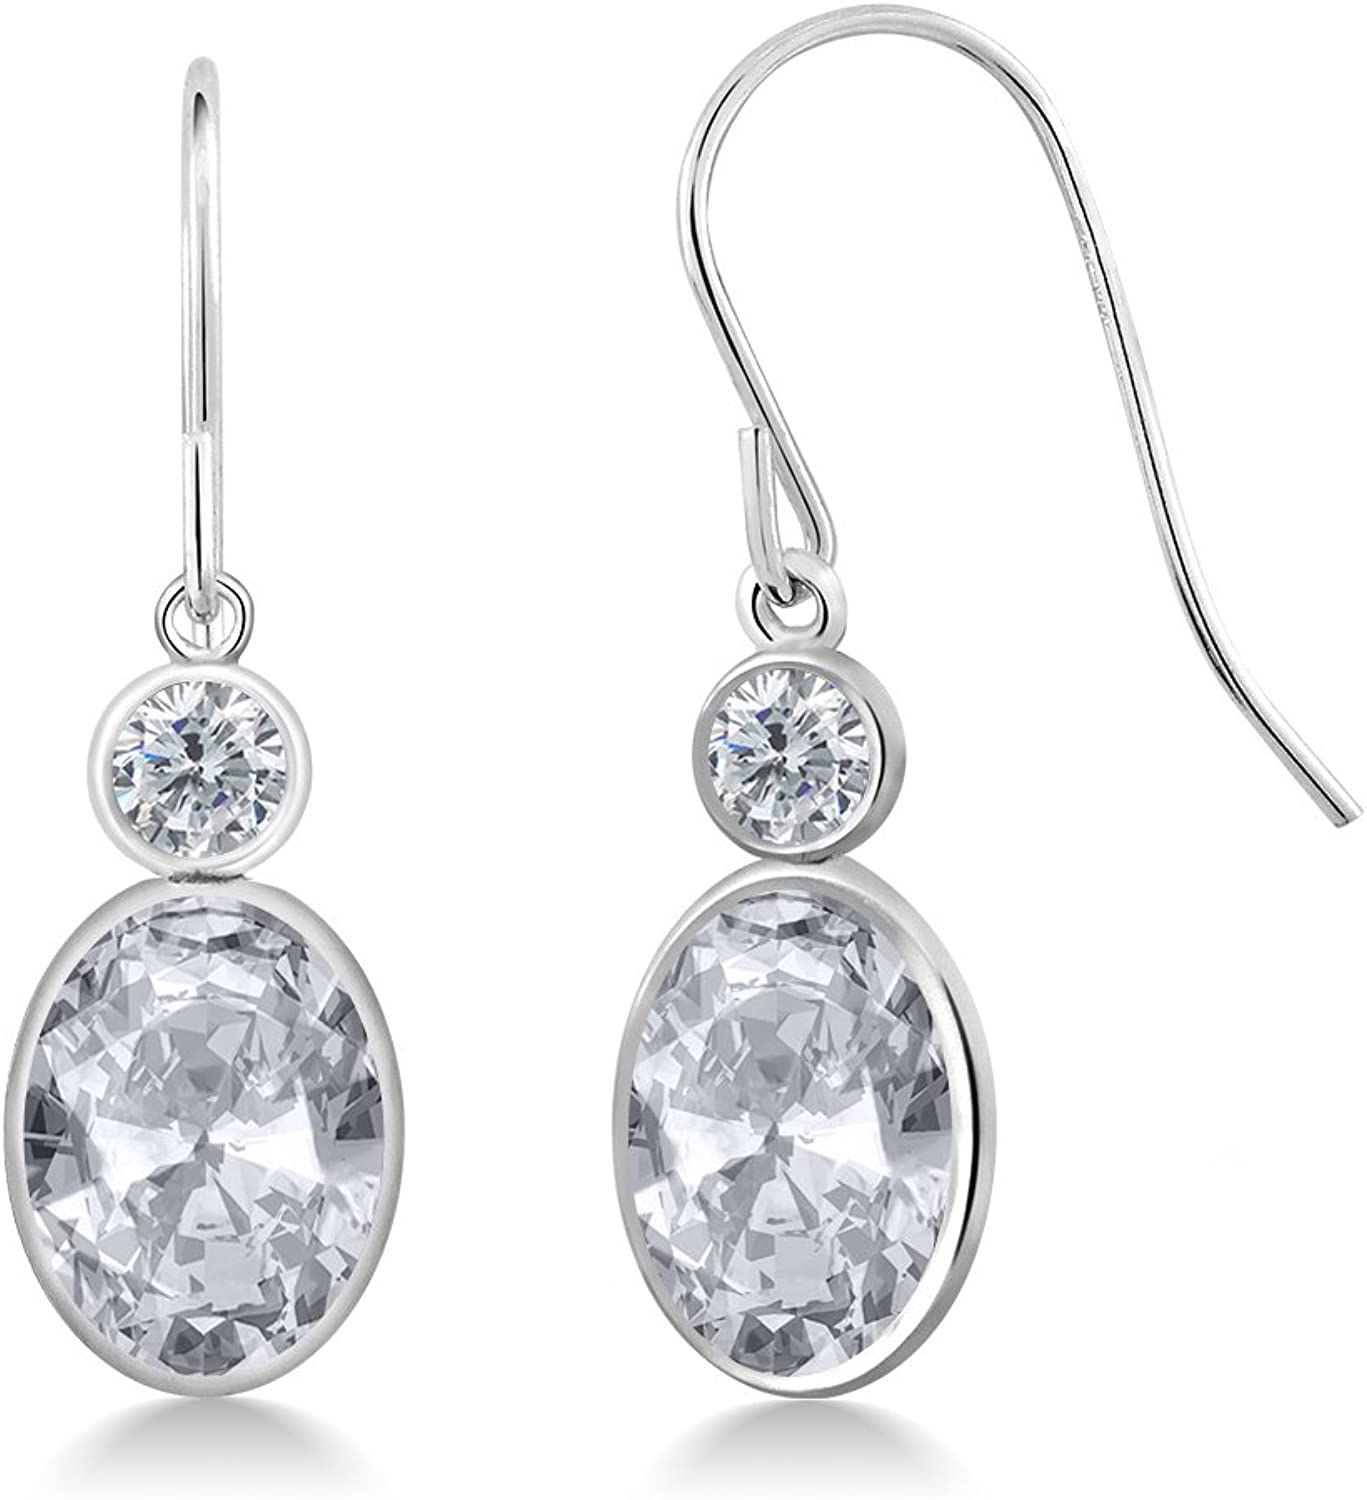 2.80 Ct Oval White Topaz G H Diamond 14K White gold Earrings